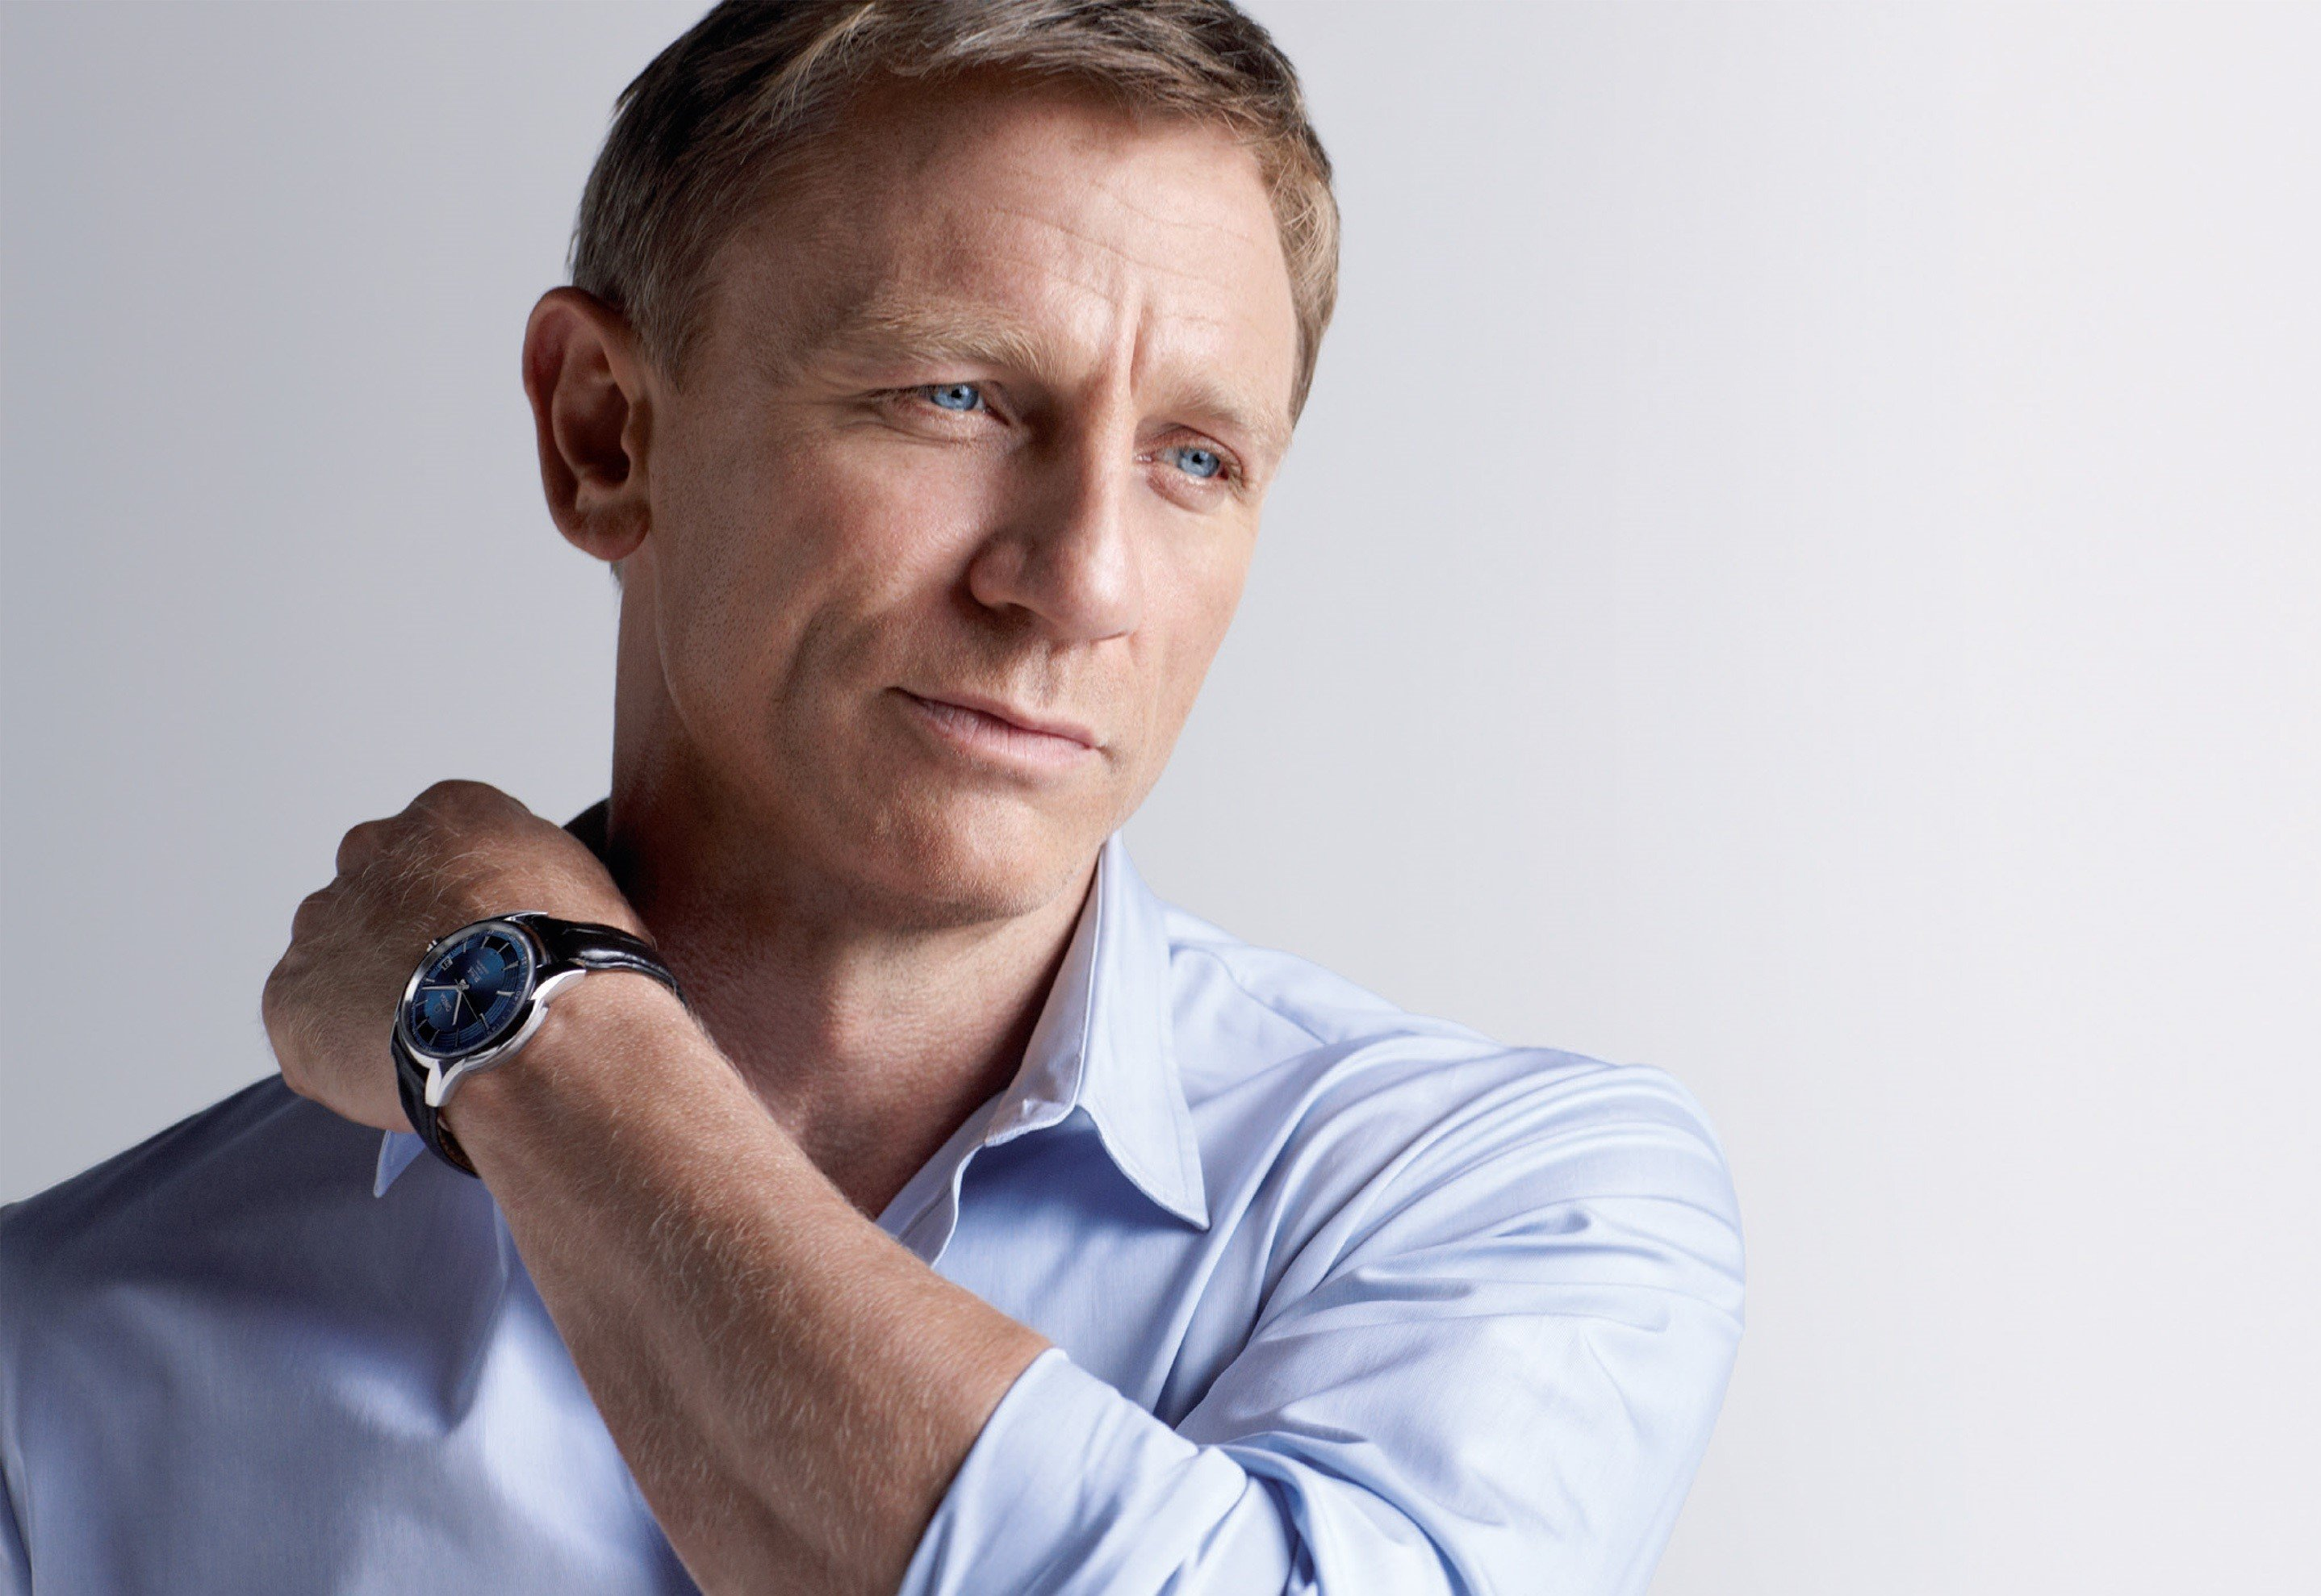 Daniel Craig Wallpaper for Desktop